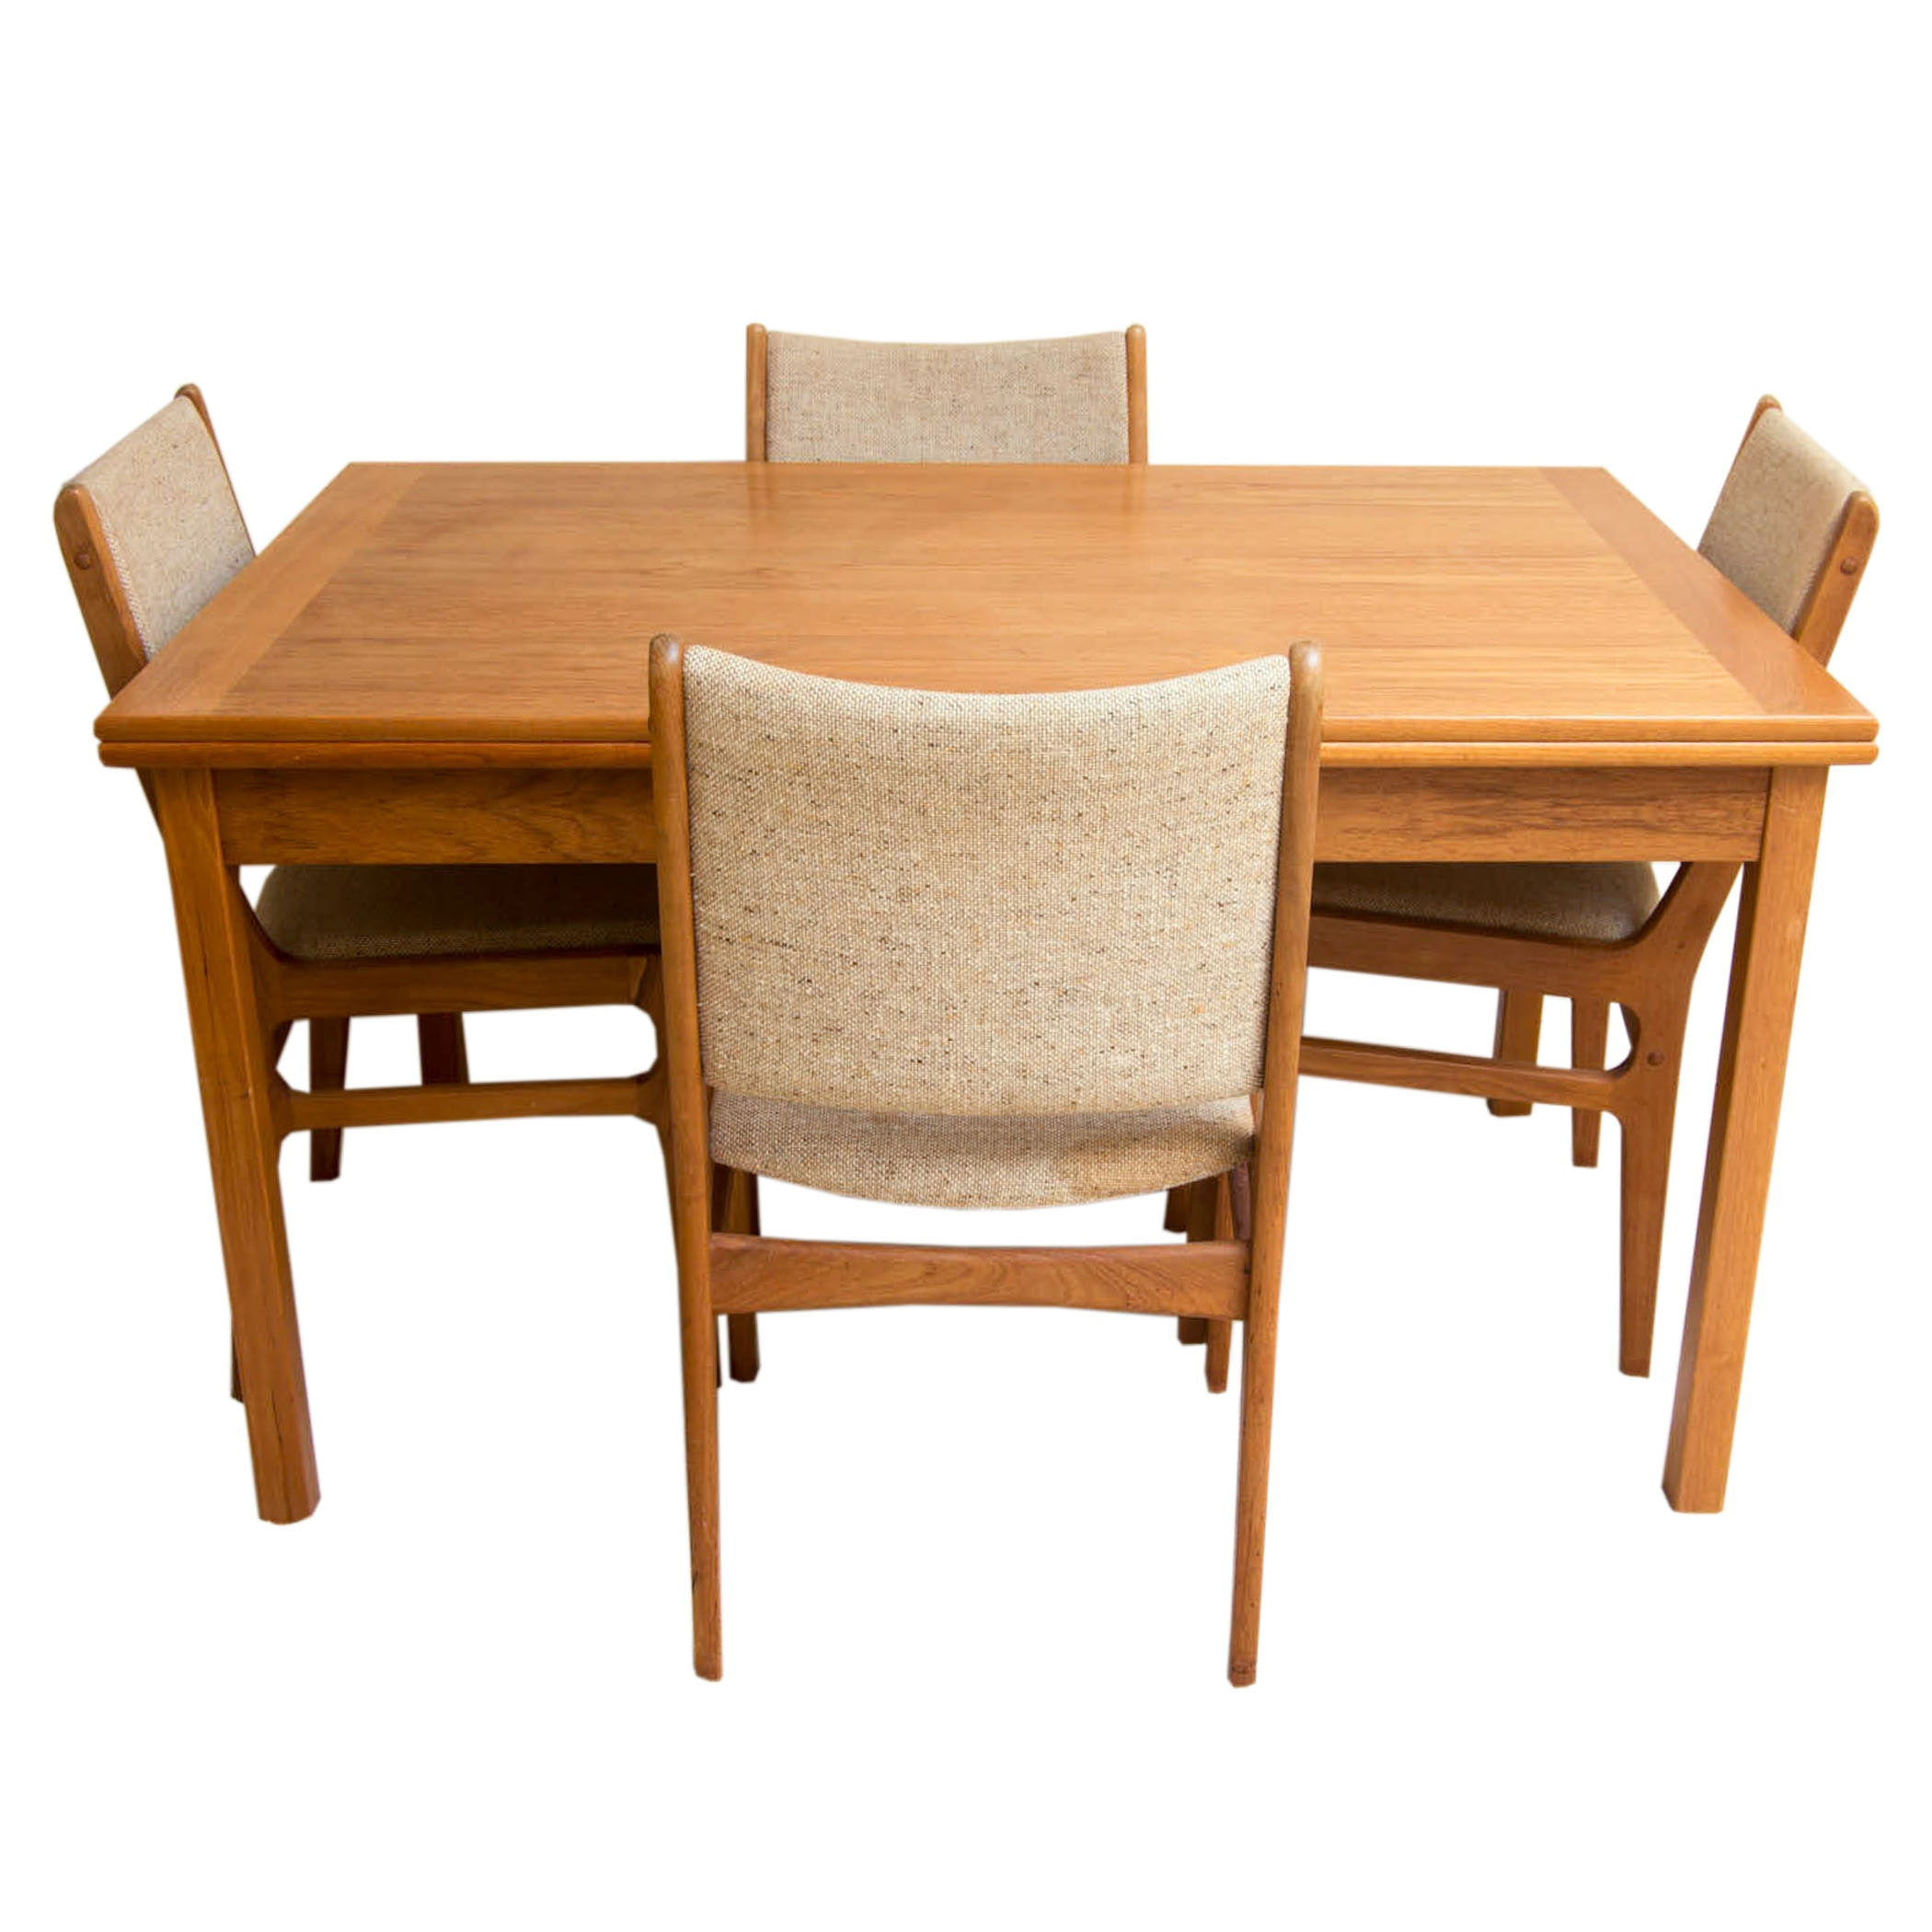 Wonderful Danish Modern Teak Chairs By D Scan With Dining Table ...